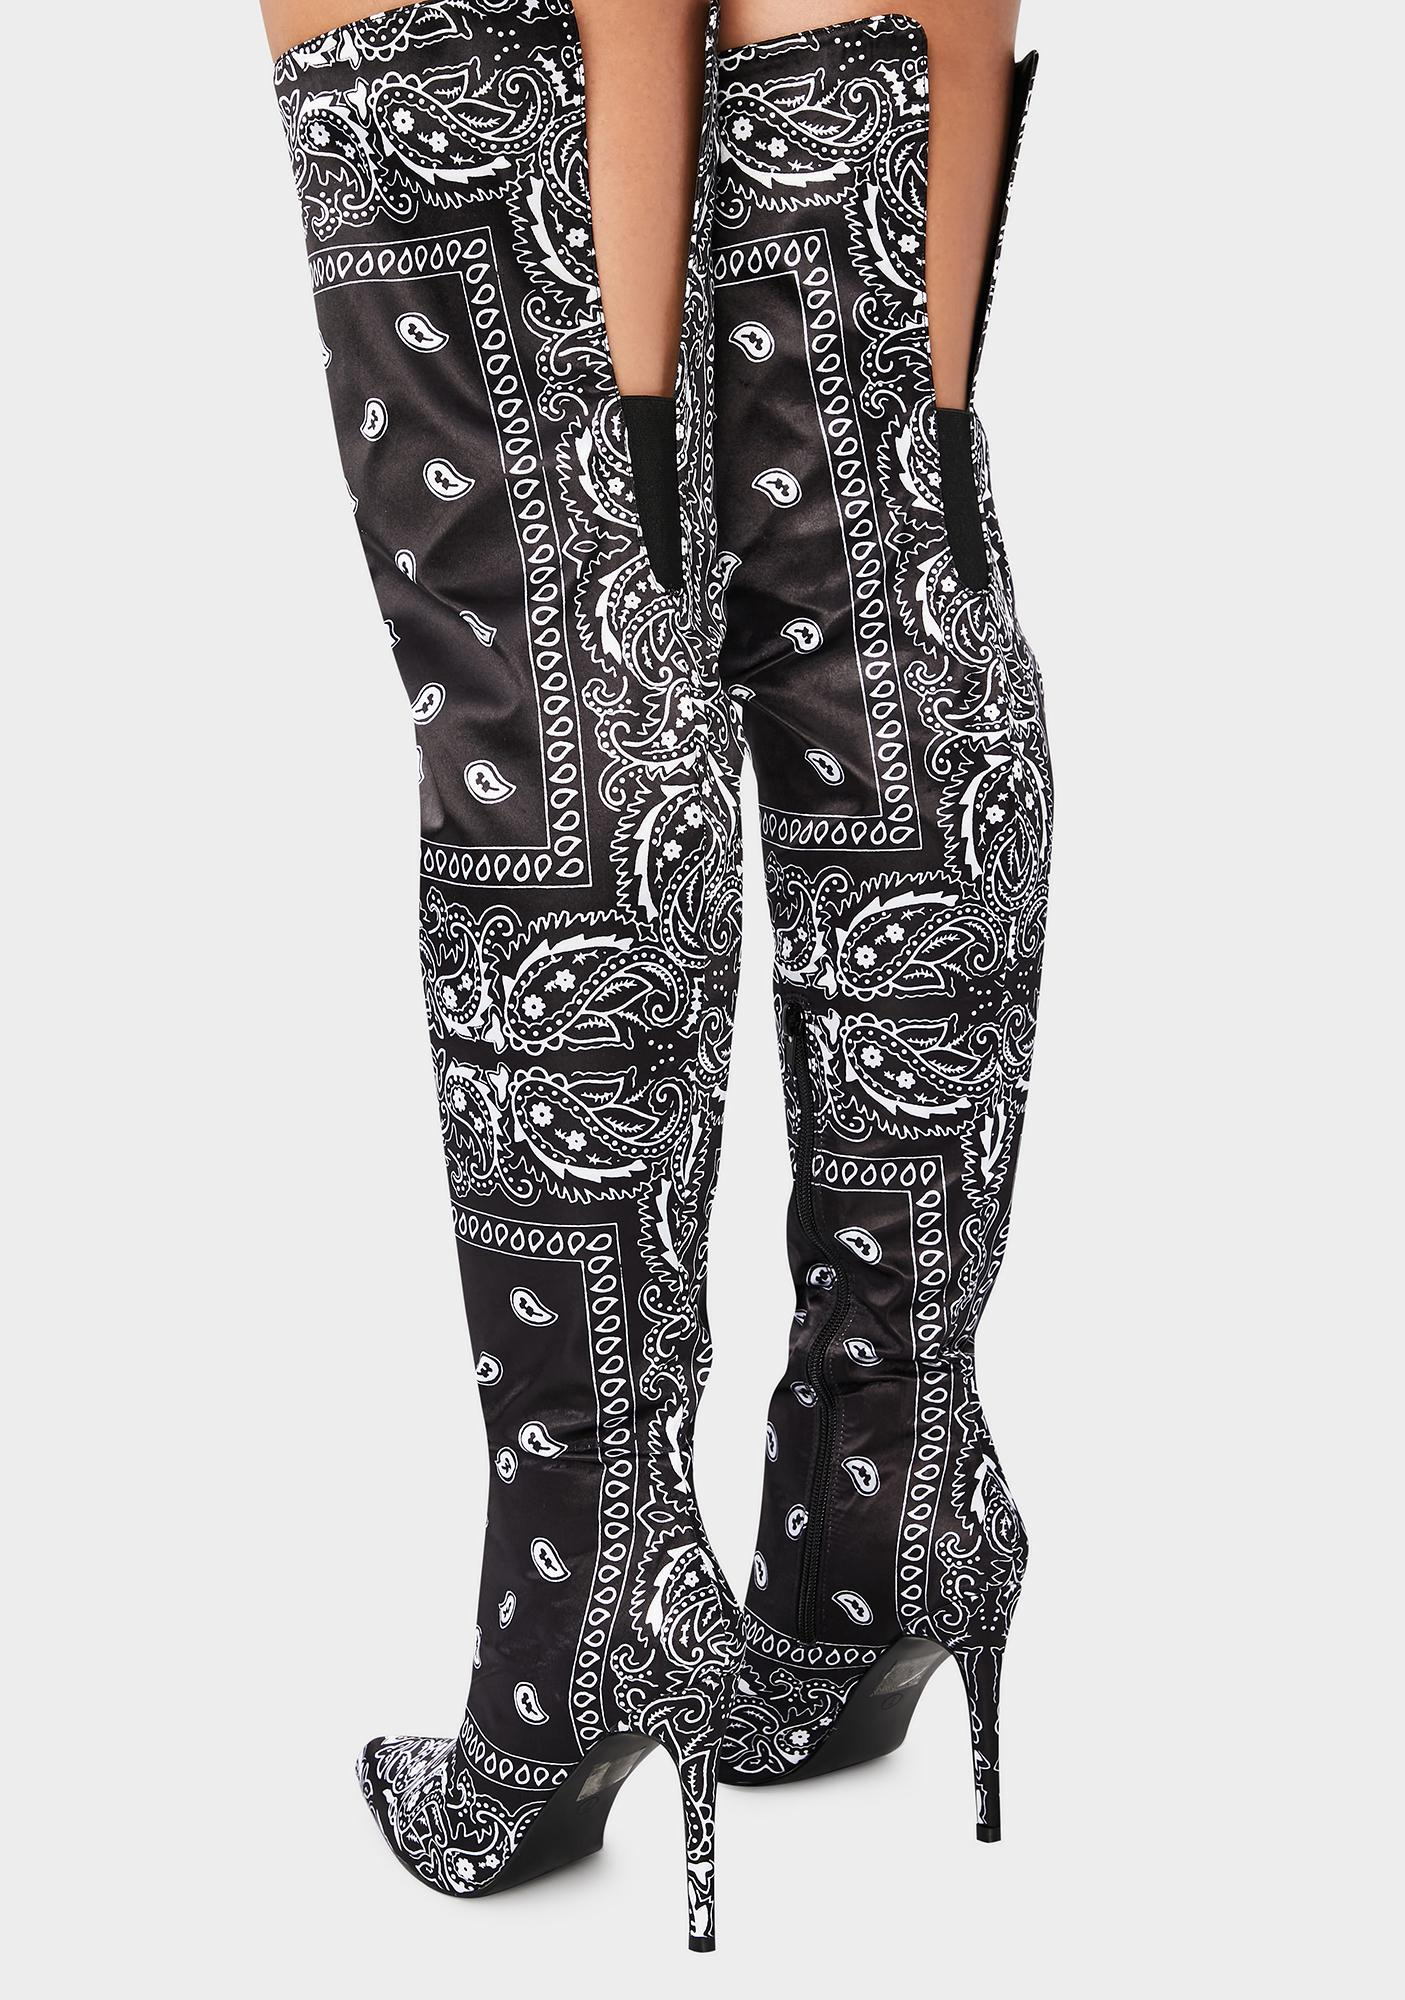 Bad Attitude Bandana Print Knee High Boots